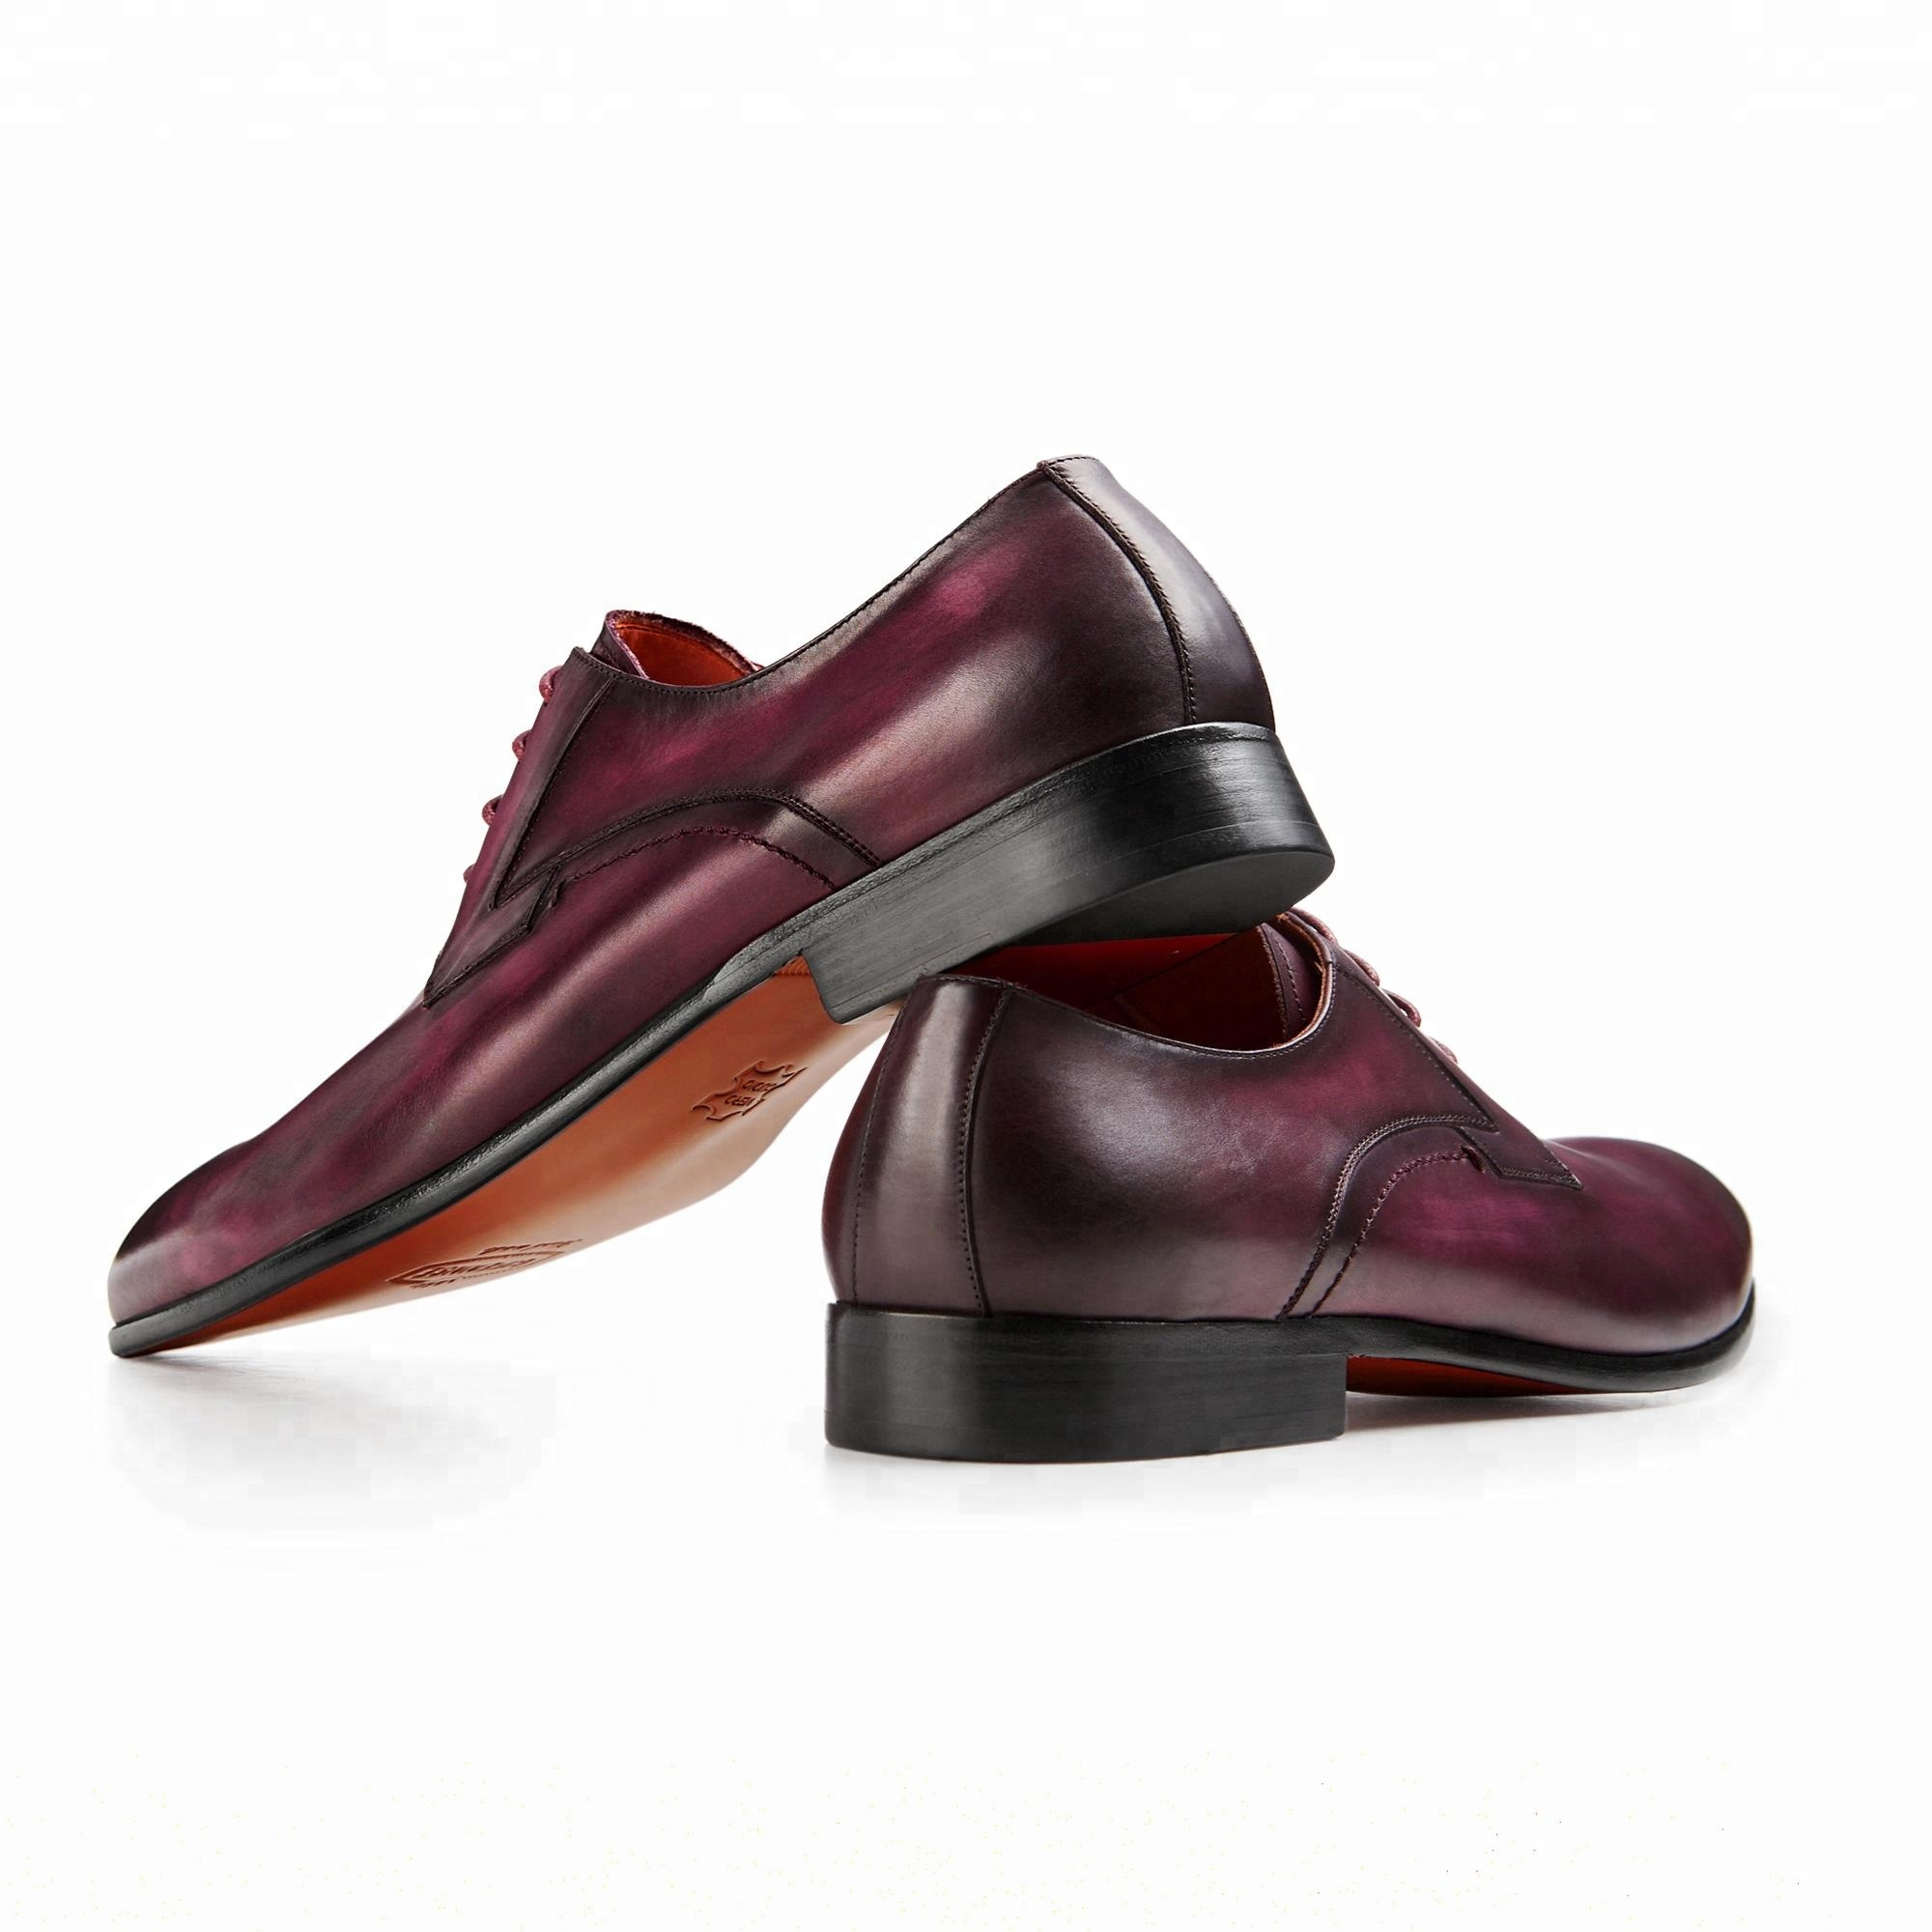 dress purple polished guangzhou wholesale shoes 80UgP